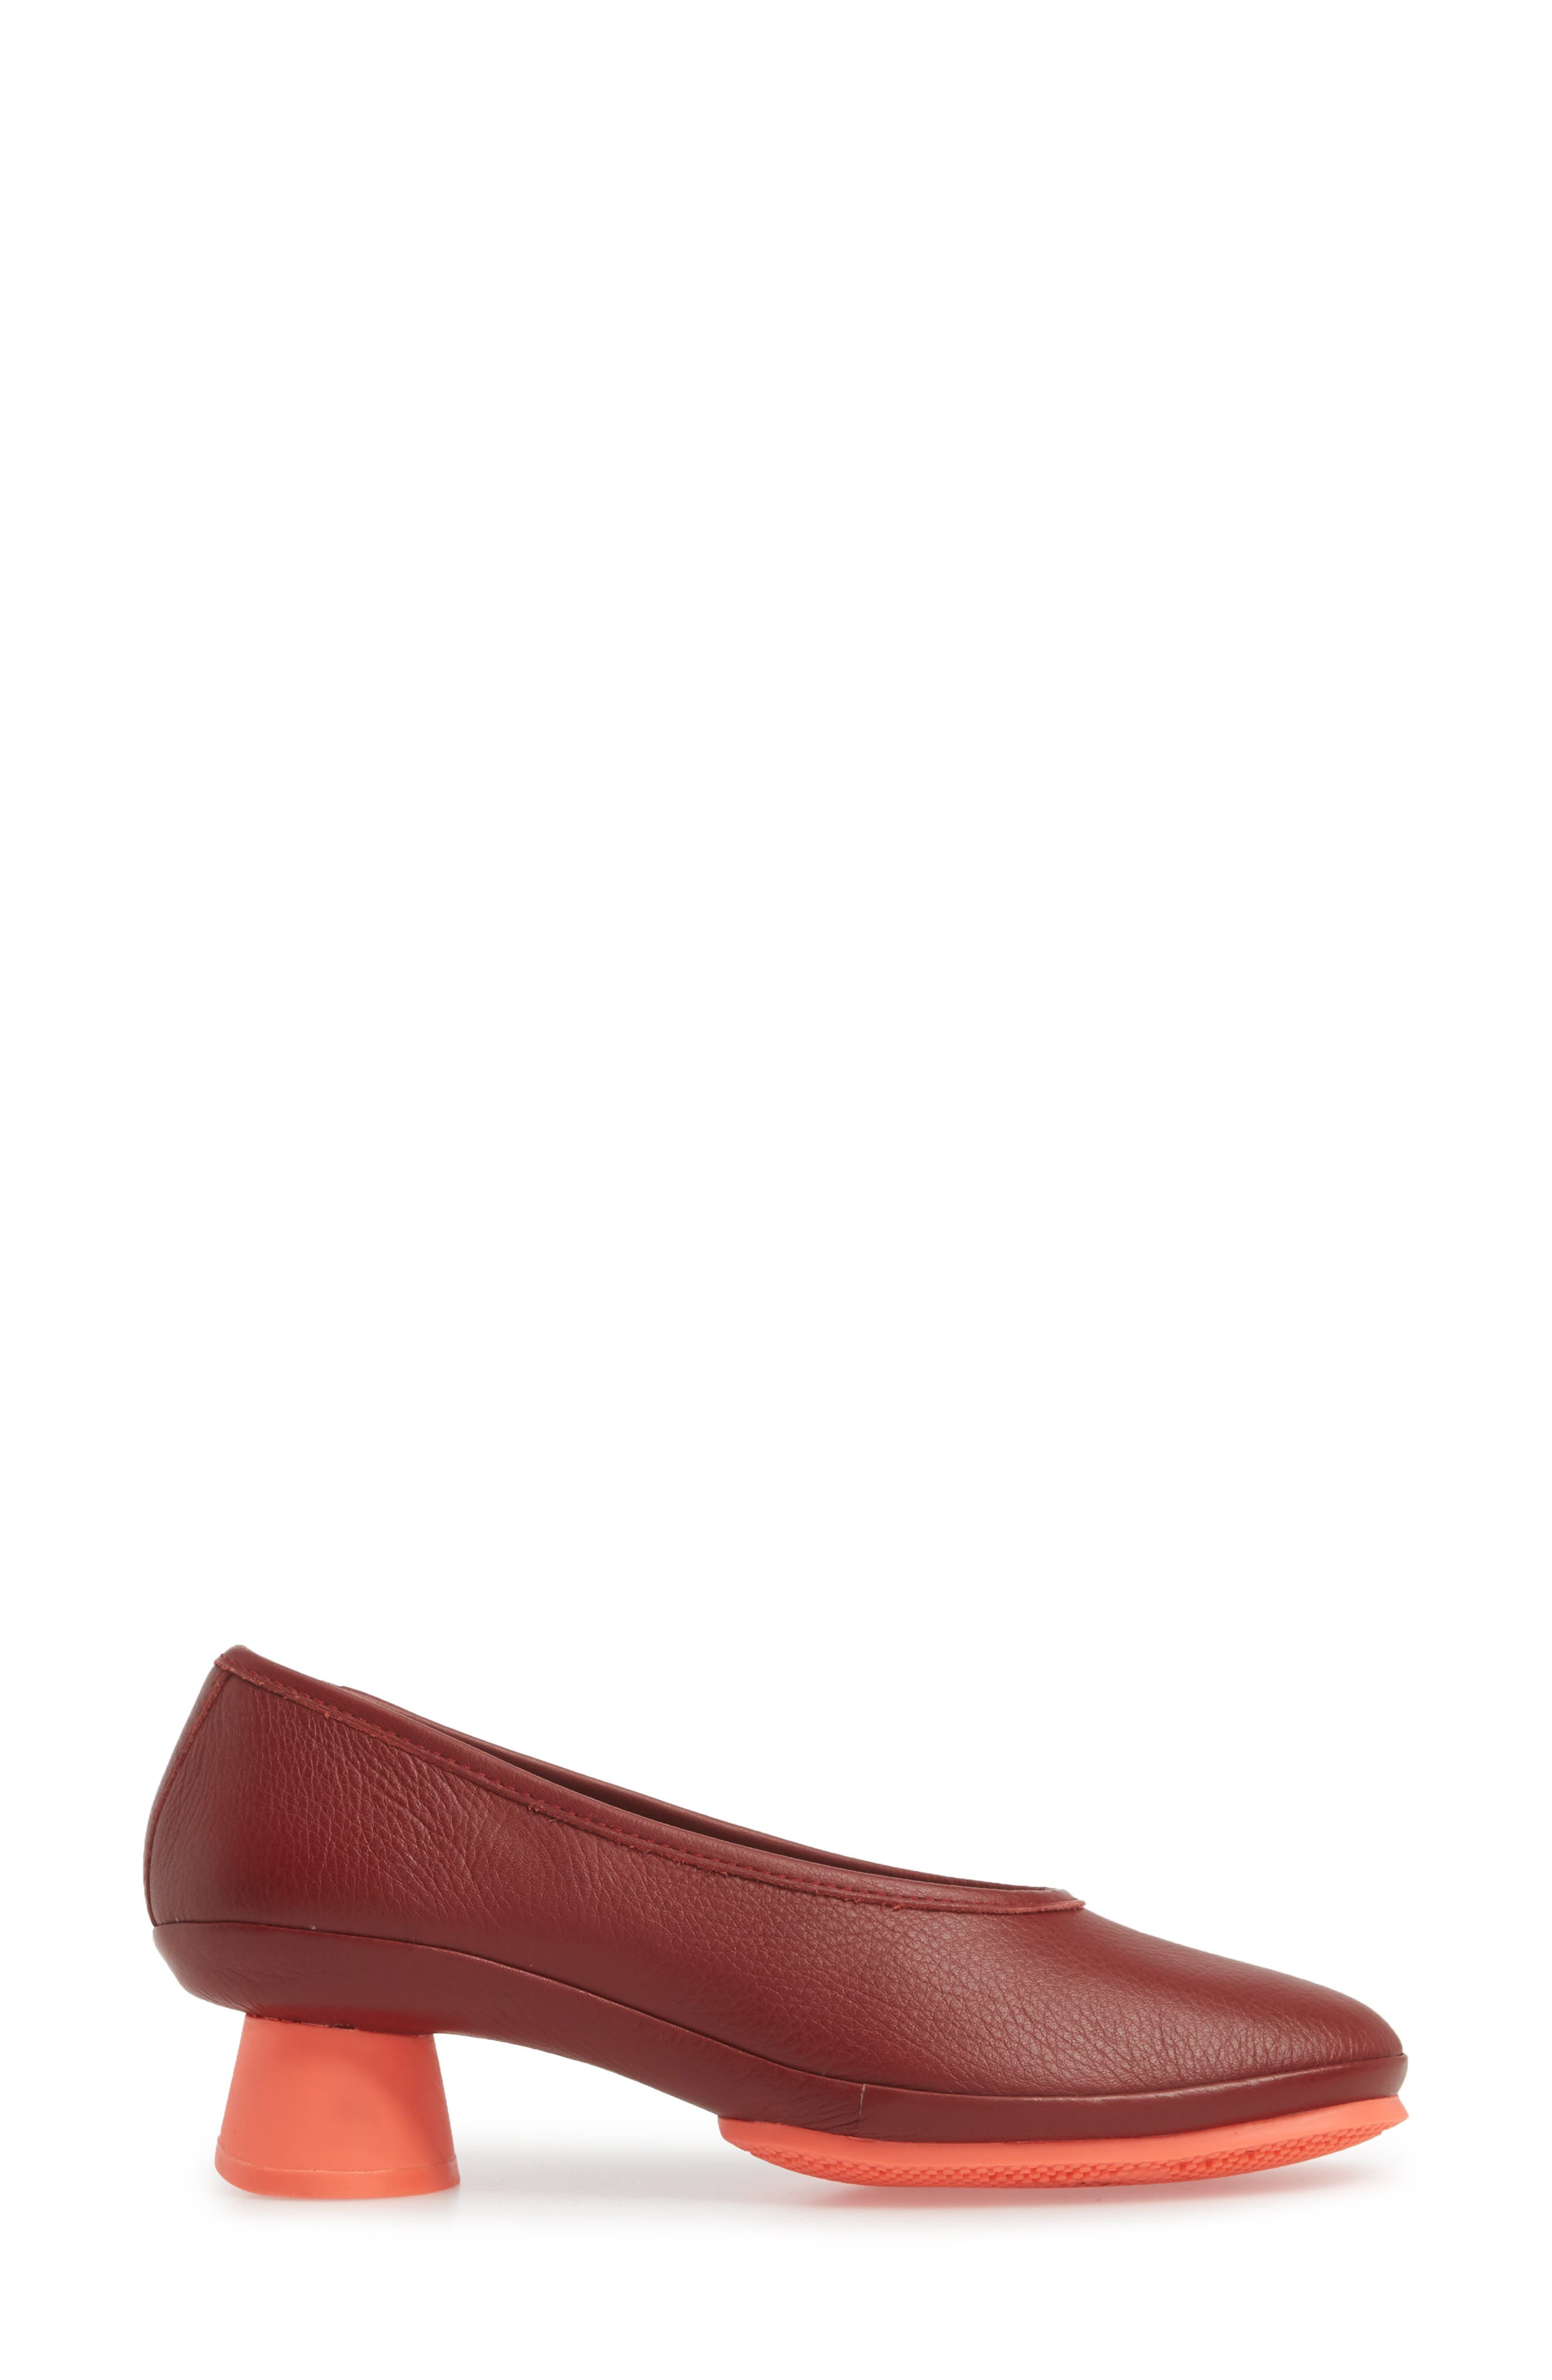 Alright Cone Heel Pump,                             Alternate thumbnail 3, color,                             DARK RED LEATEHR